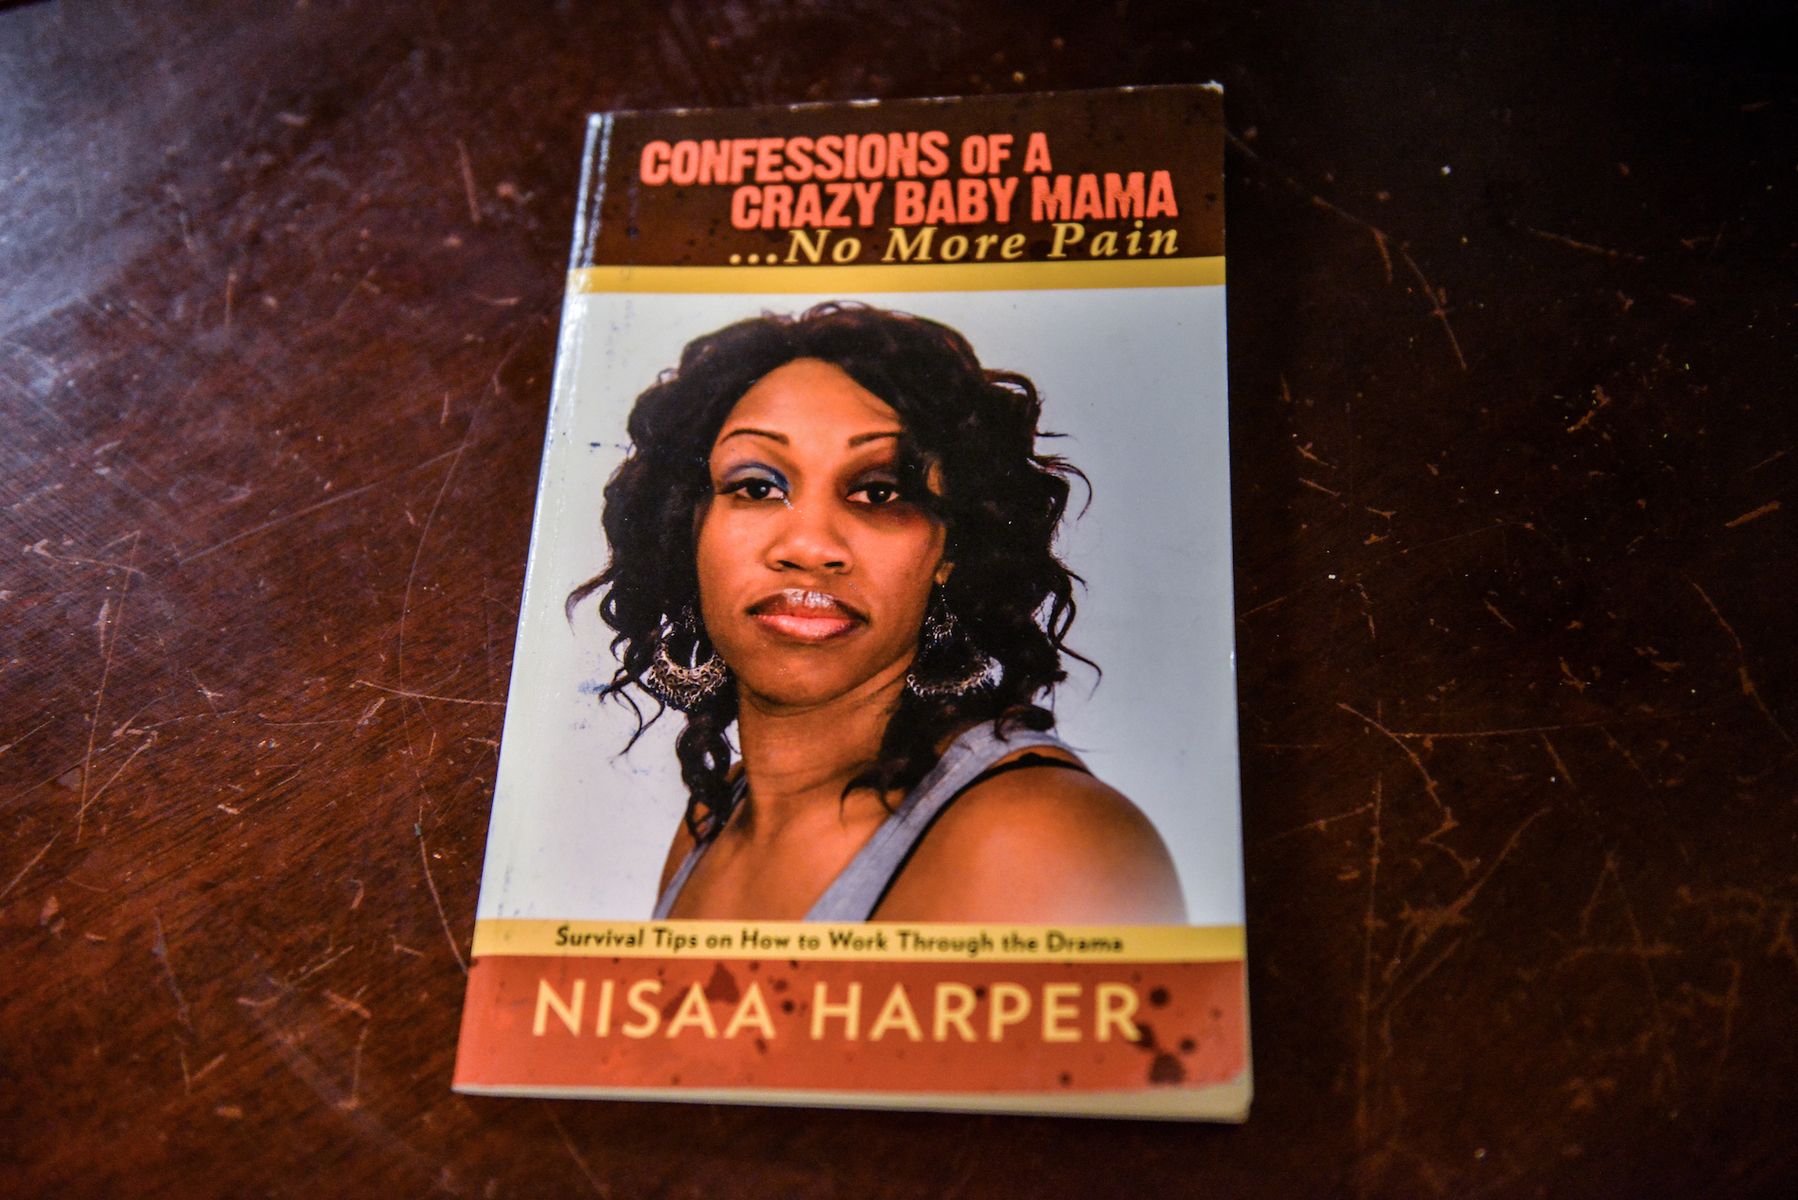 Nisa is a college graduate, a single mother of four, a community activist, motivational speaker and published author.